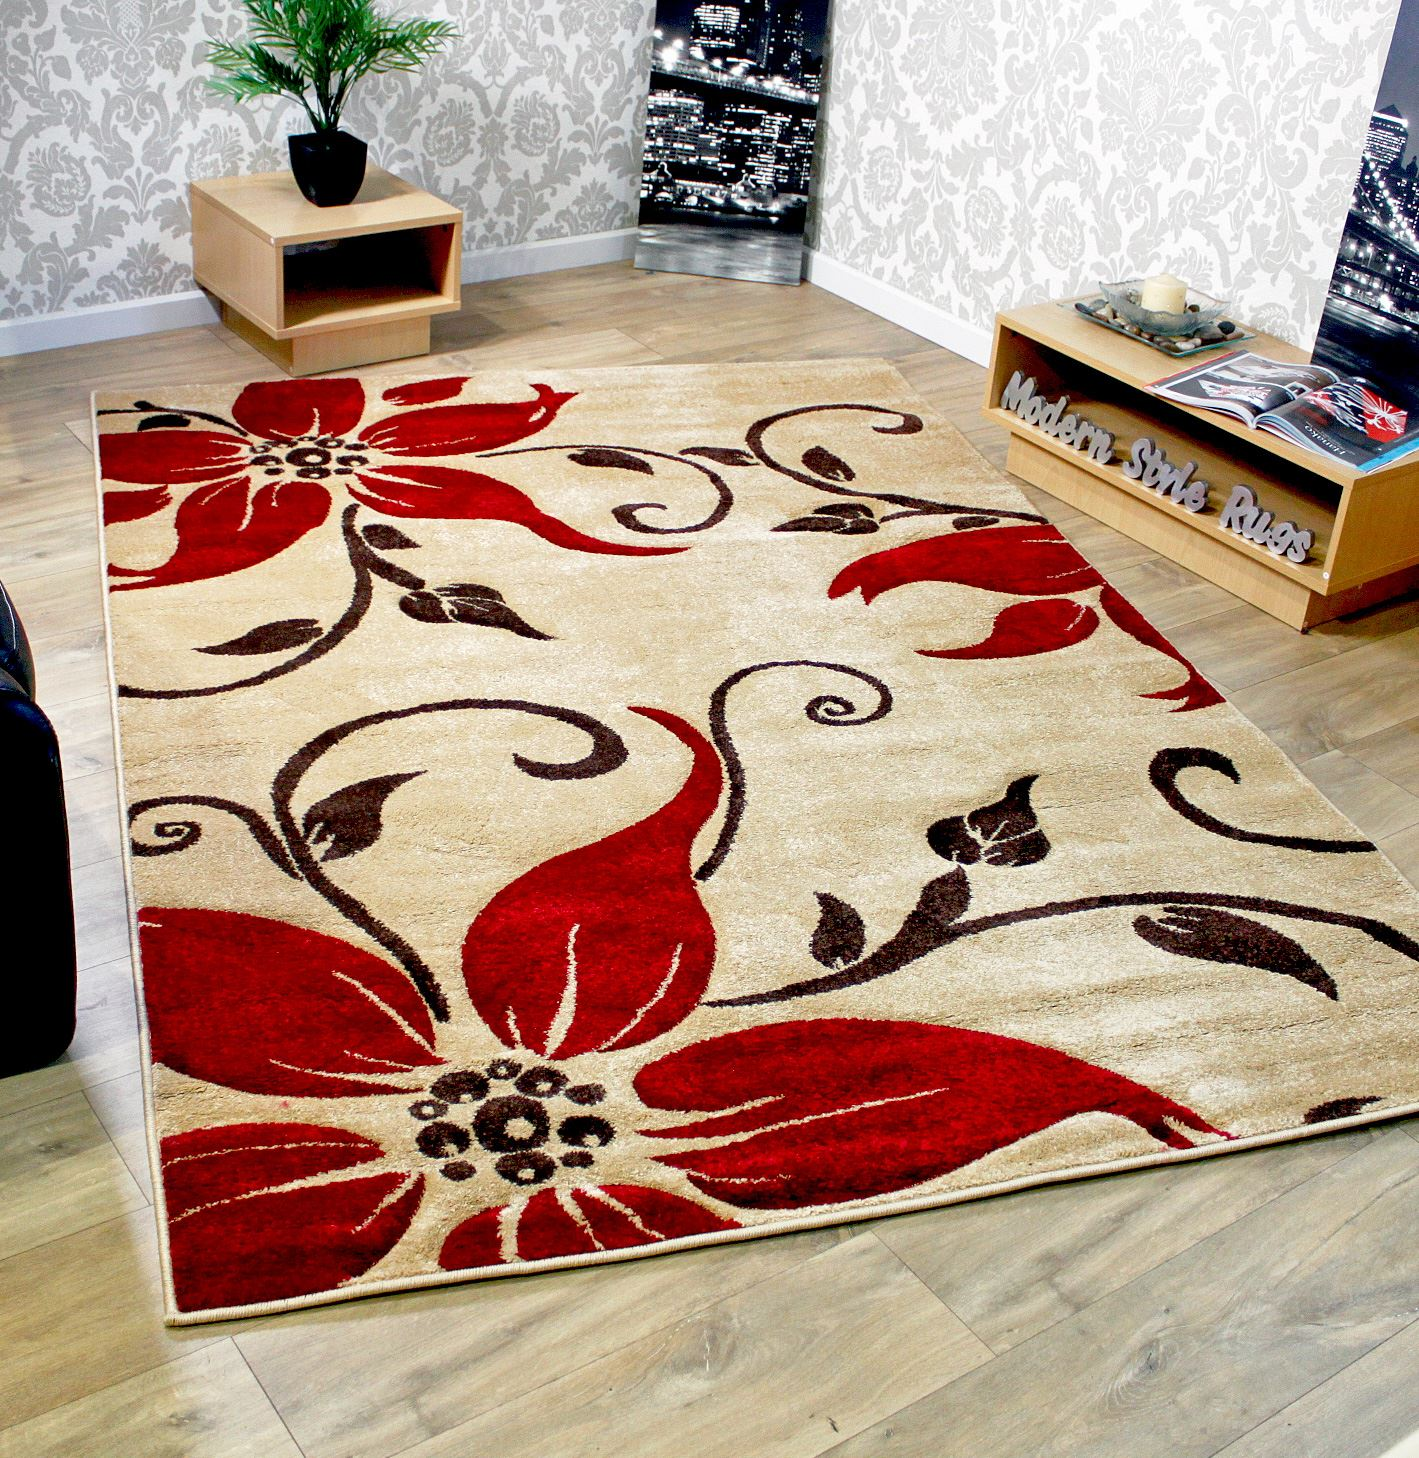 fleur motif tapis rouge noir vert beige marron violet cr me moderne lagre tailles ebay. Black Bedroom Furniture Sets. Home Design Ideas